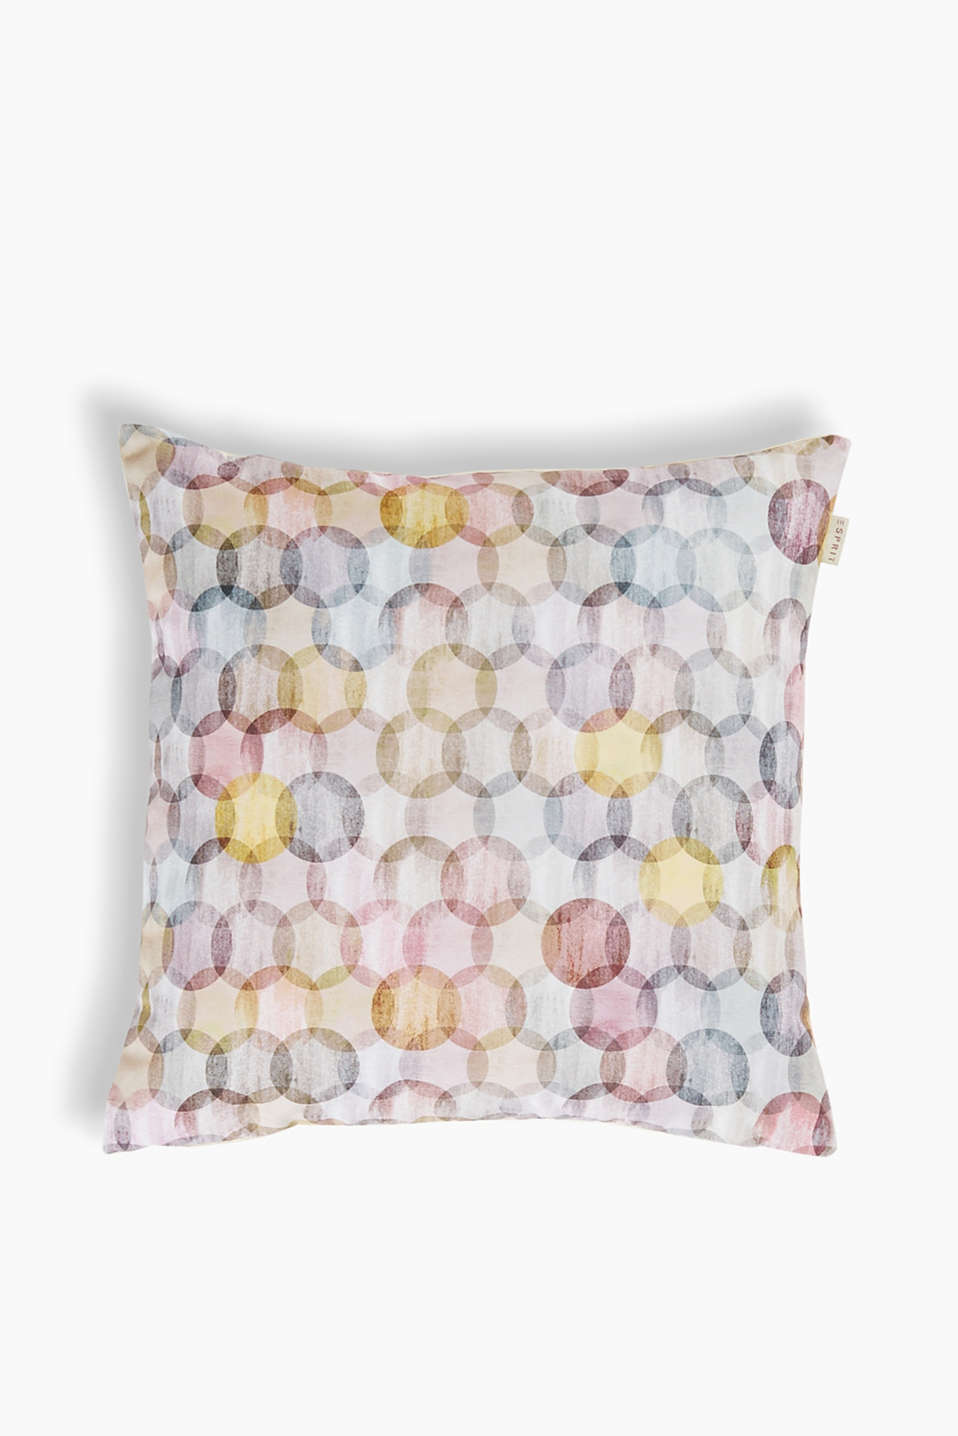 Cushion cover with a digital print and plain-coloured back section, with colourful circles in a batik look